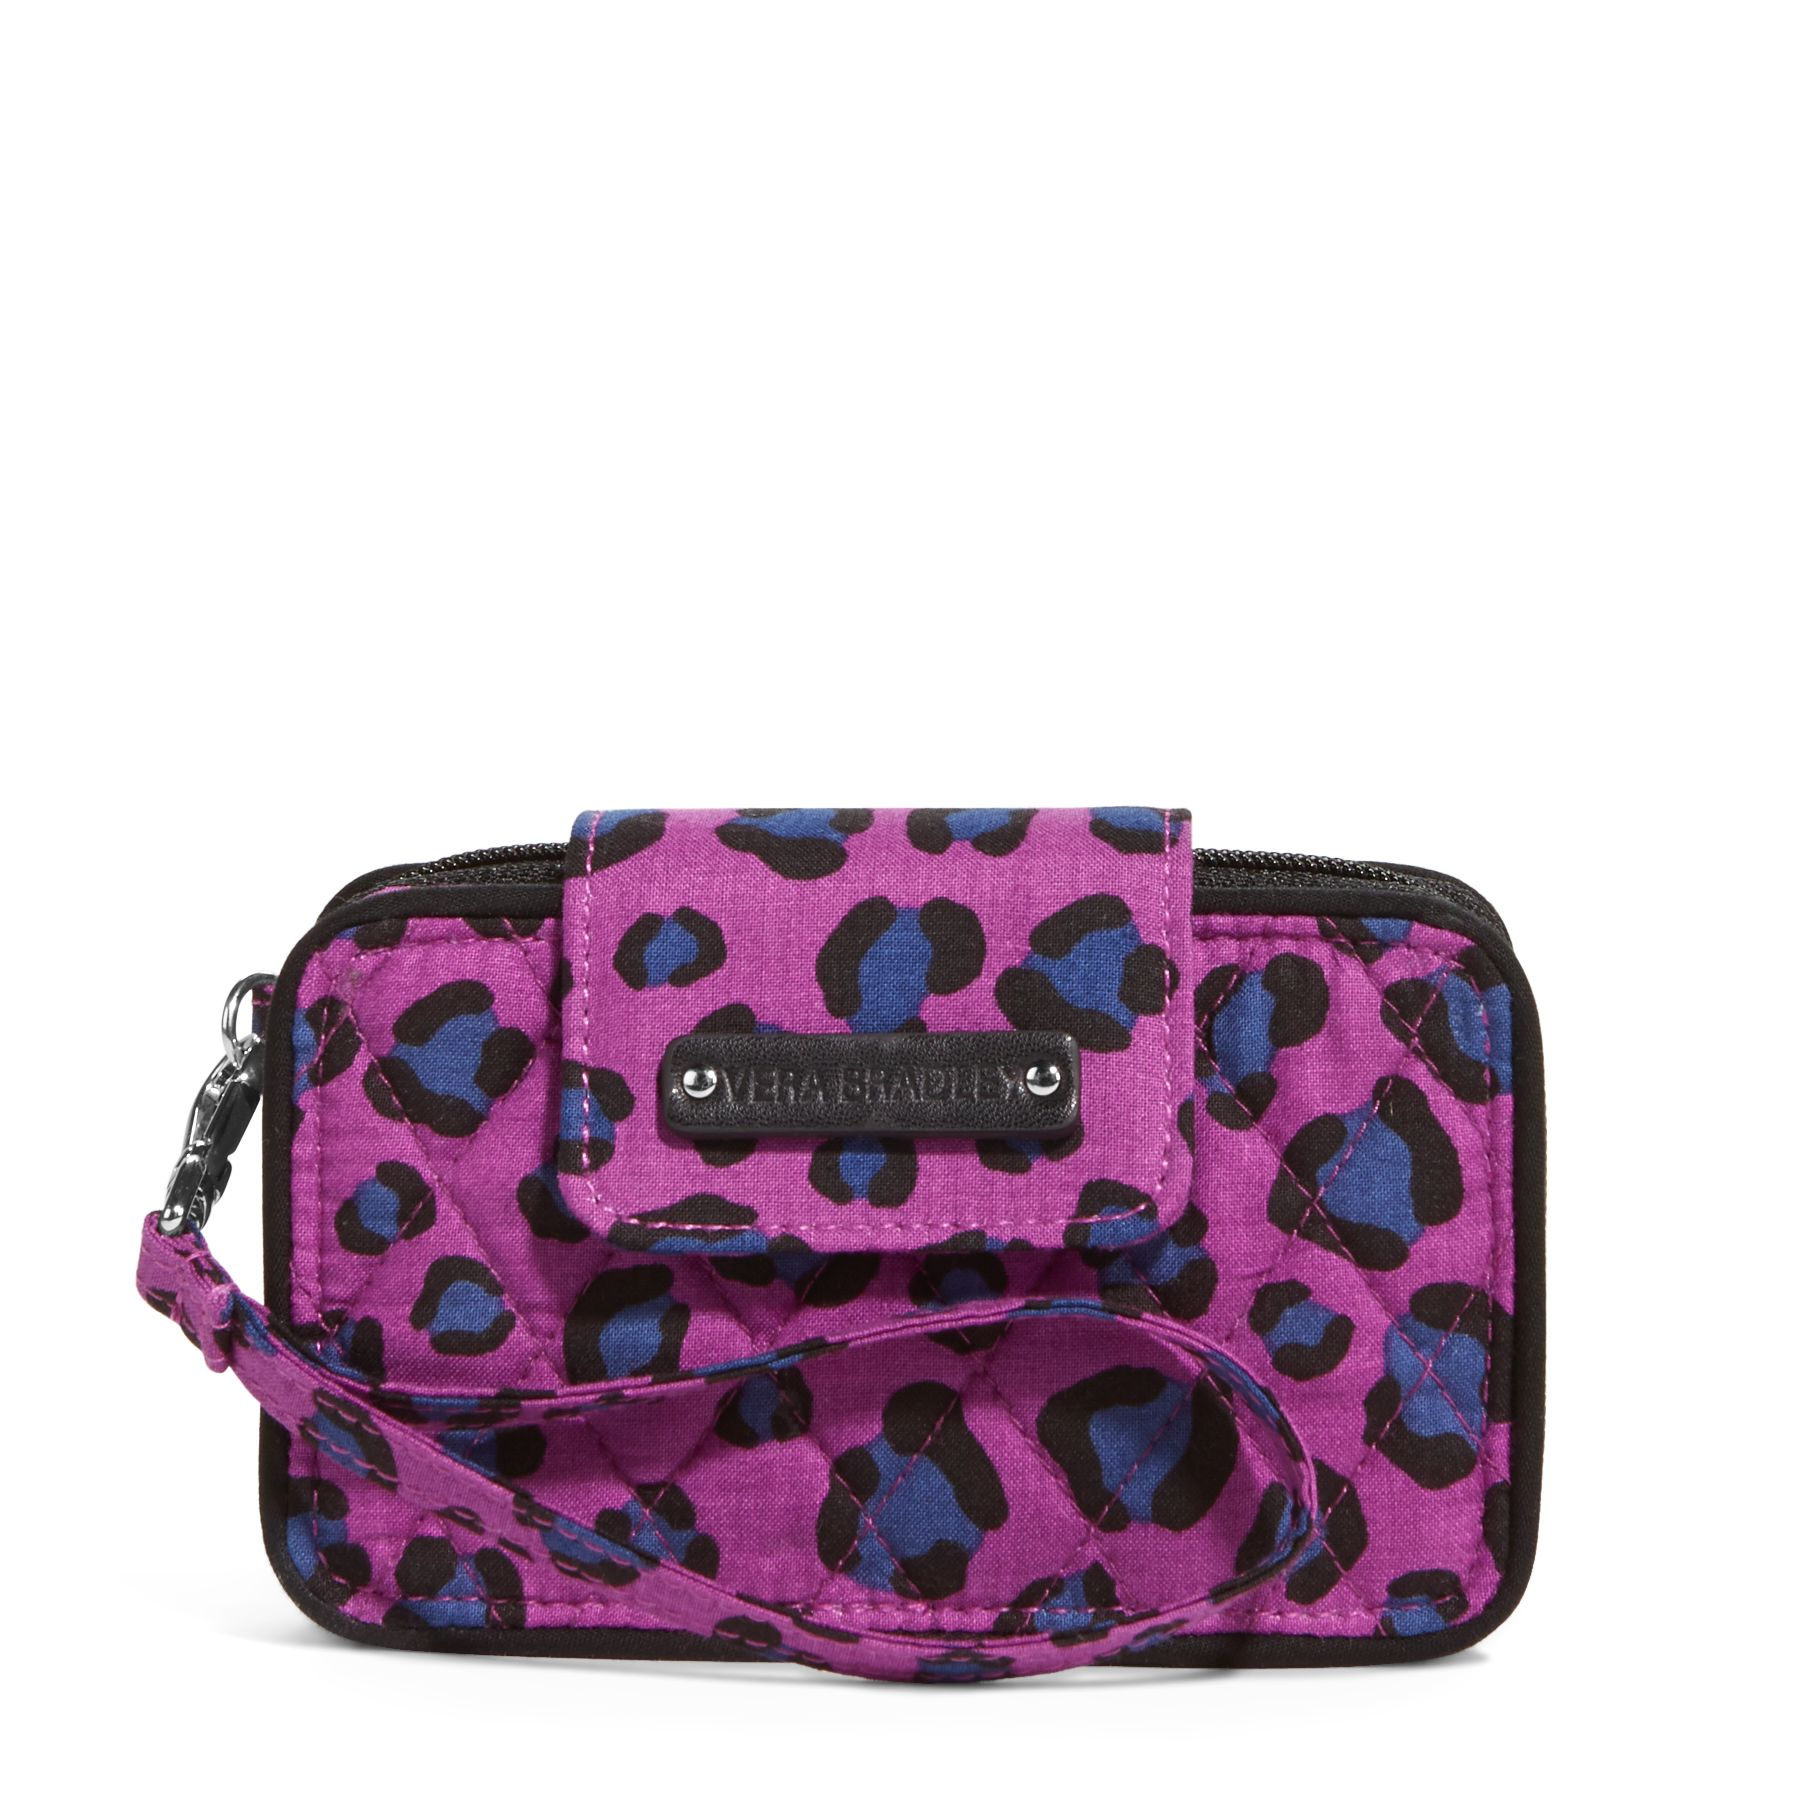 Vera Bradley Smartphone Wristlet For Iphone